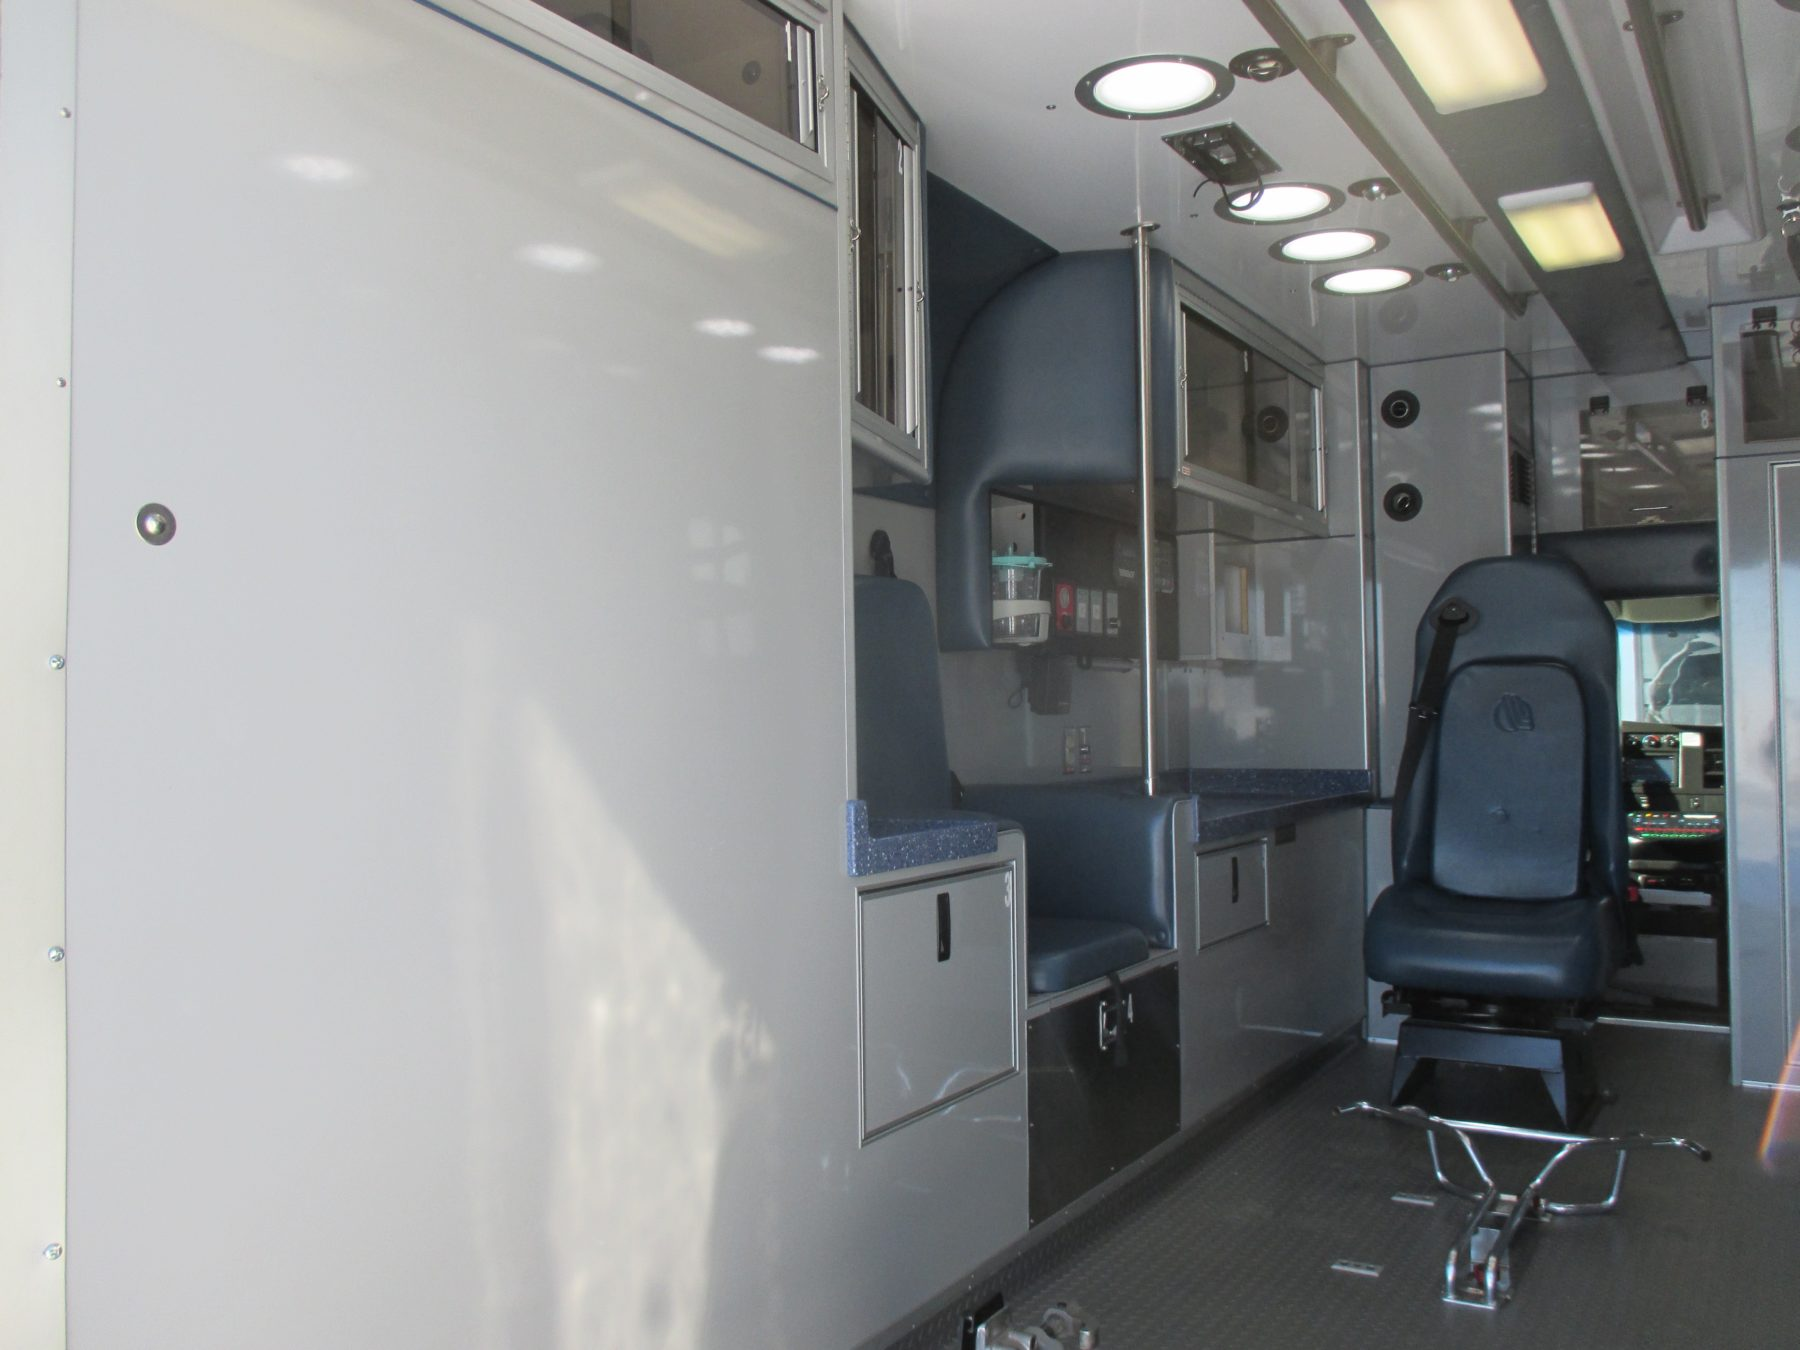 2010 Chevrolet G4500 Type 3 Ambulance For Sale – Picture 8